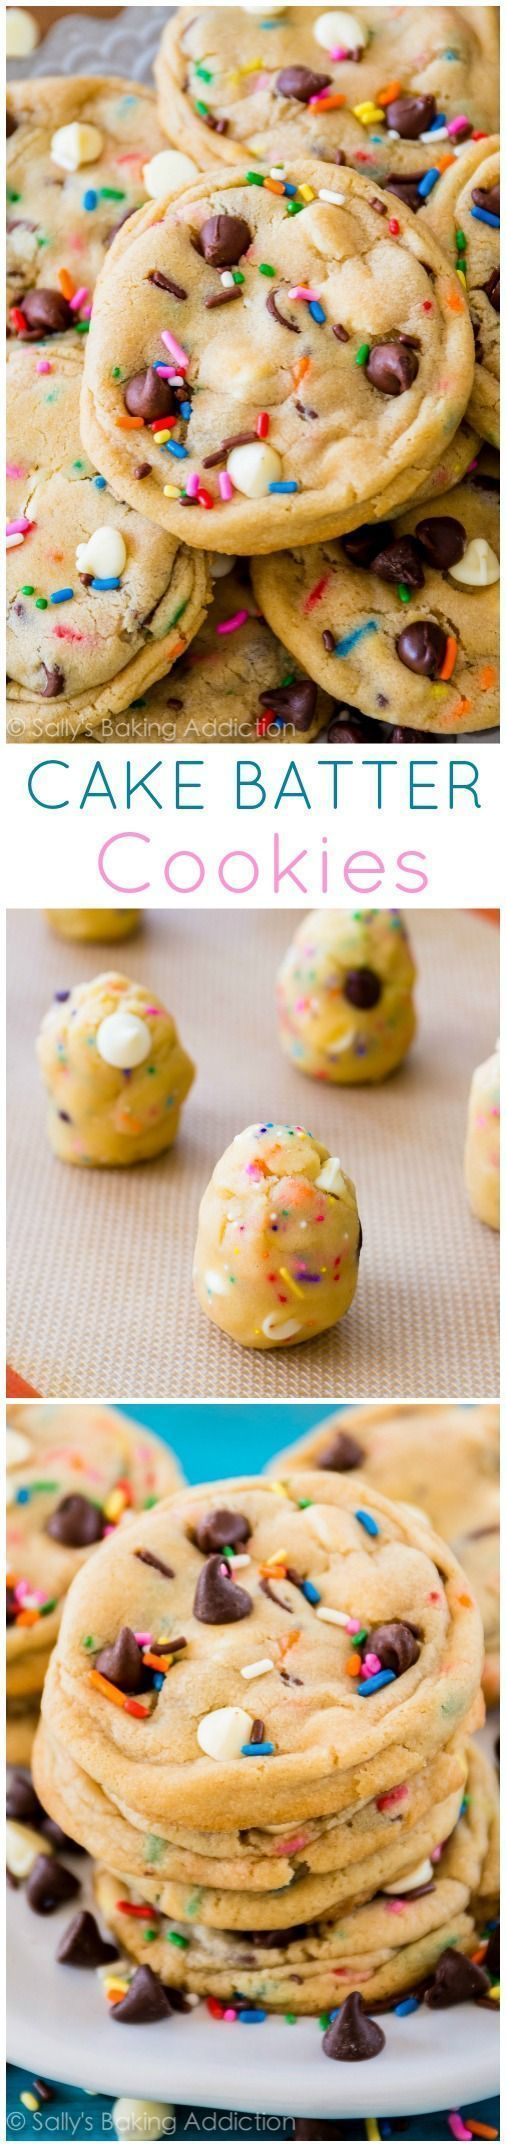 Pinner wrote:THE Cake Batter Chocolate Chip Cookie recipe ... One of the most popular recipes!